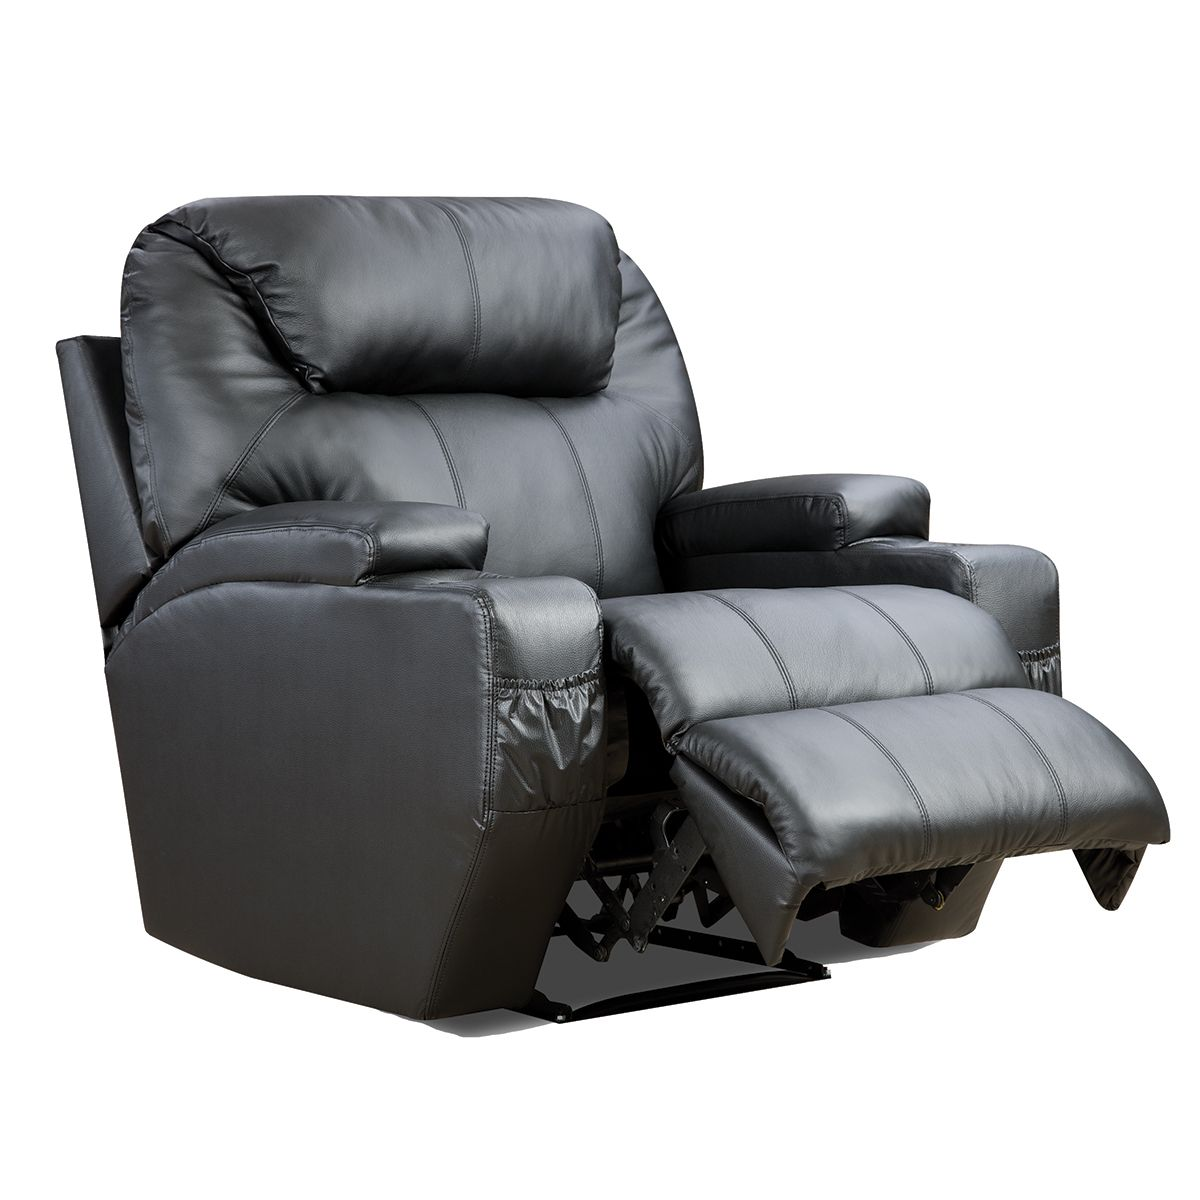 Sofa Relax Con Usb The Dump Furniture Power Recliner With Usb Port Recipe Dump